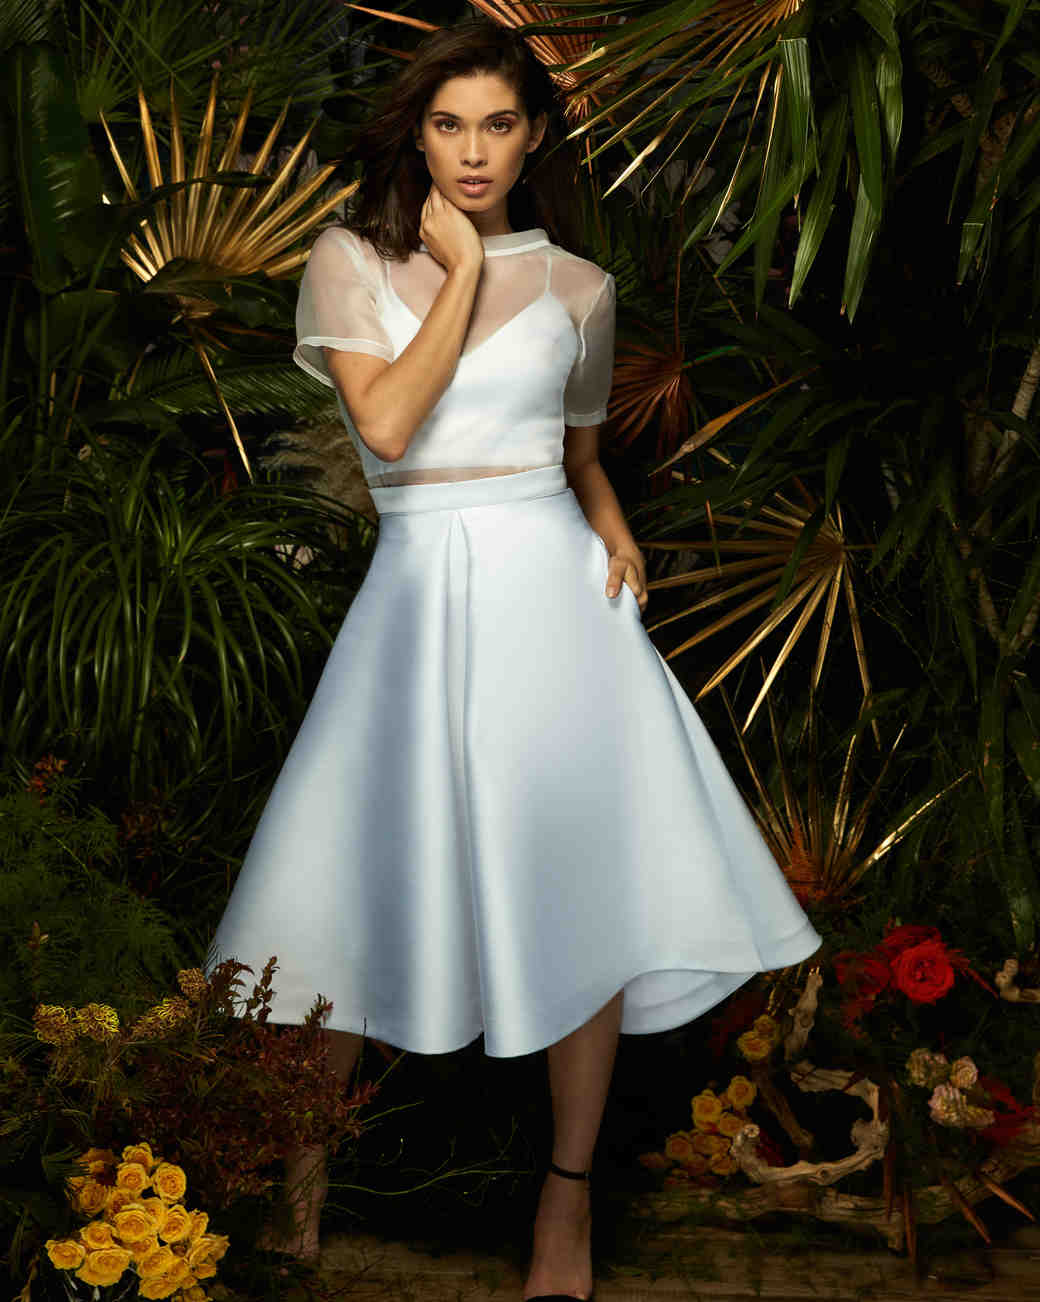 lakum wedding dress spring 2019 separates skirt